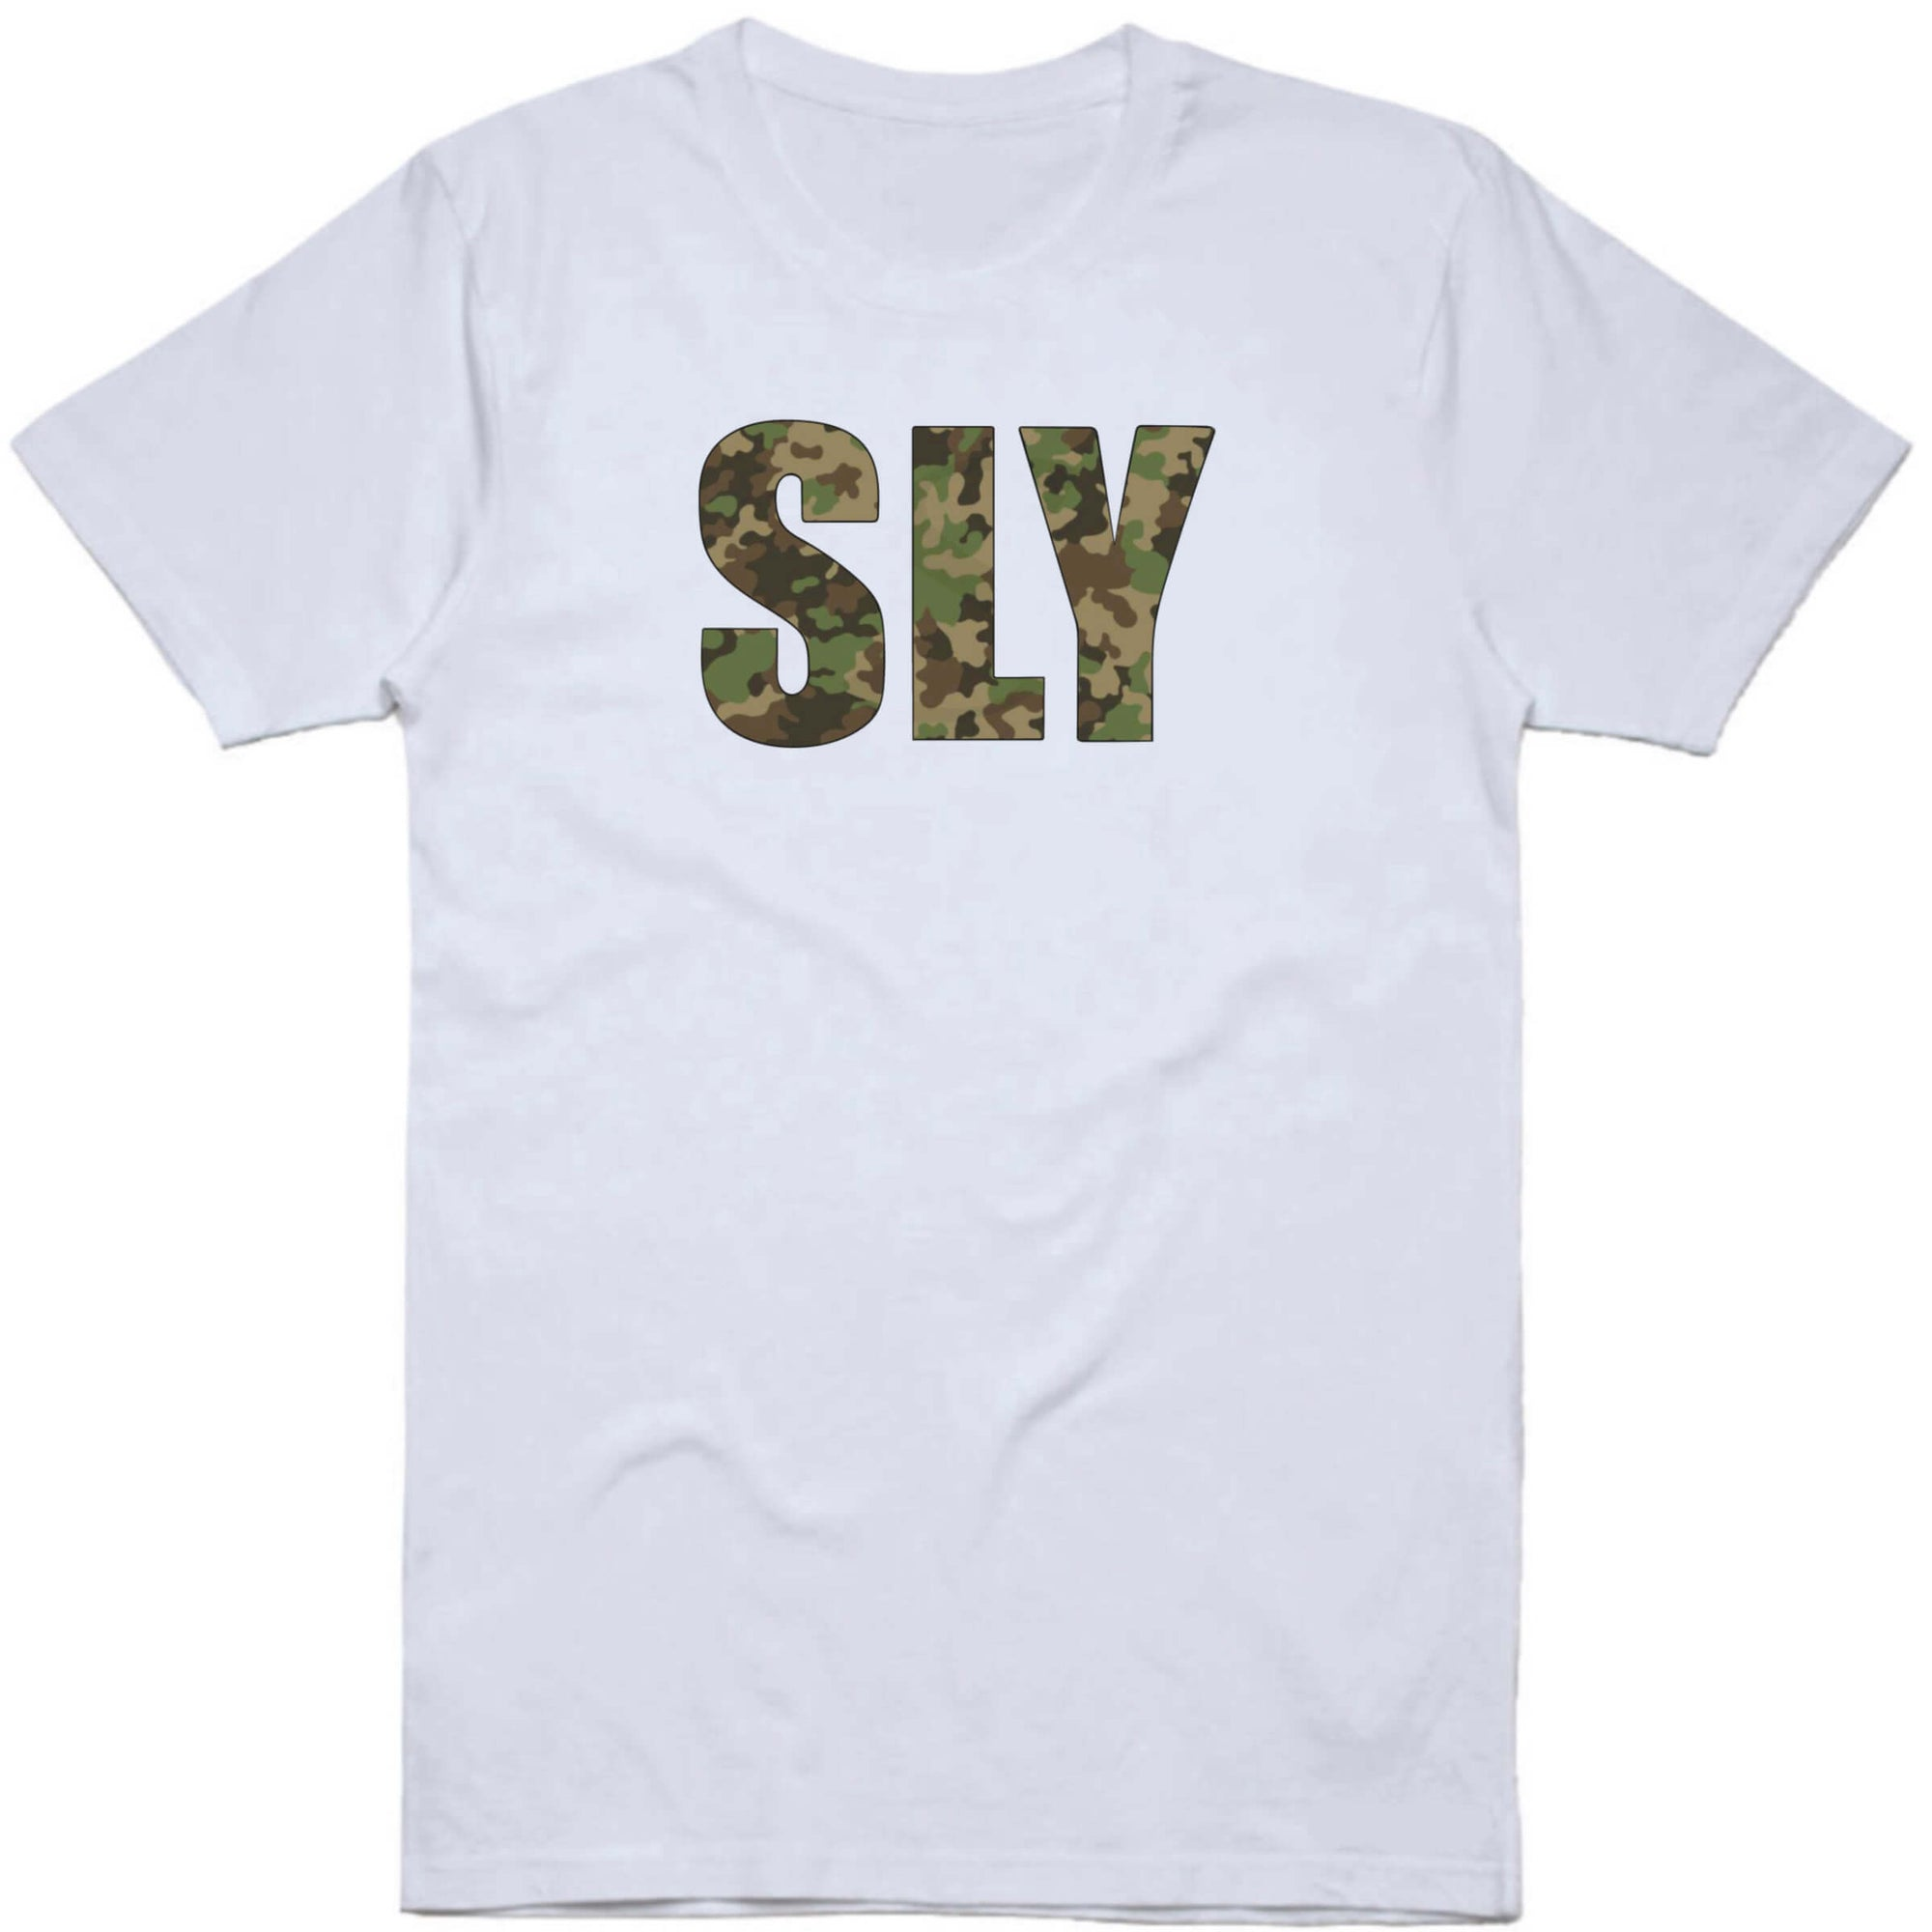 SLY Camouflage Logo T-Shirt (Wholesale)